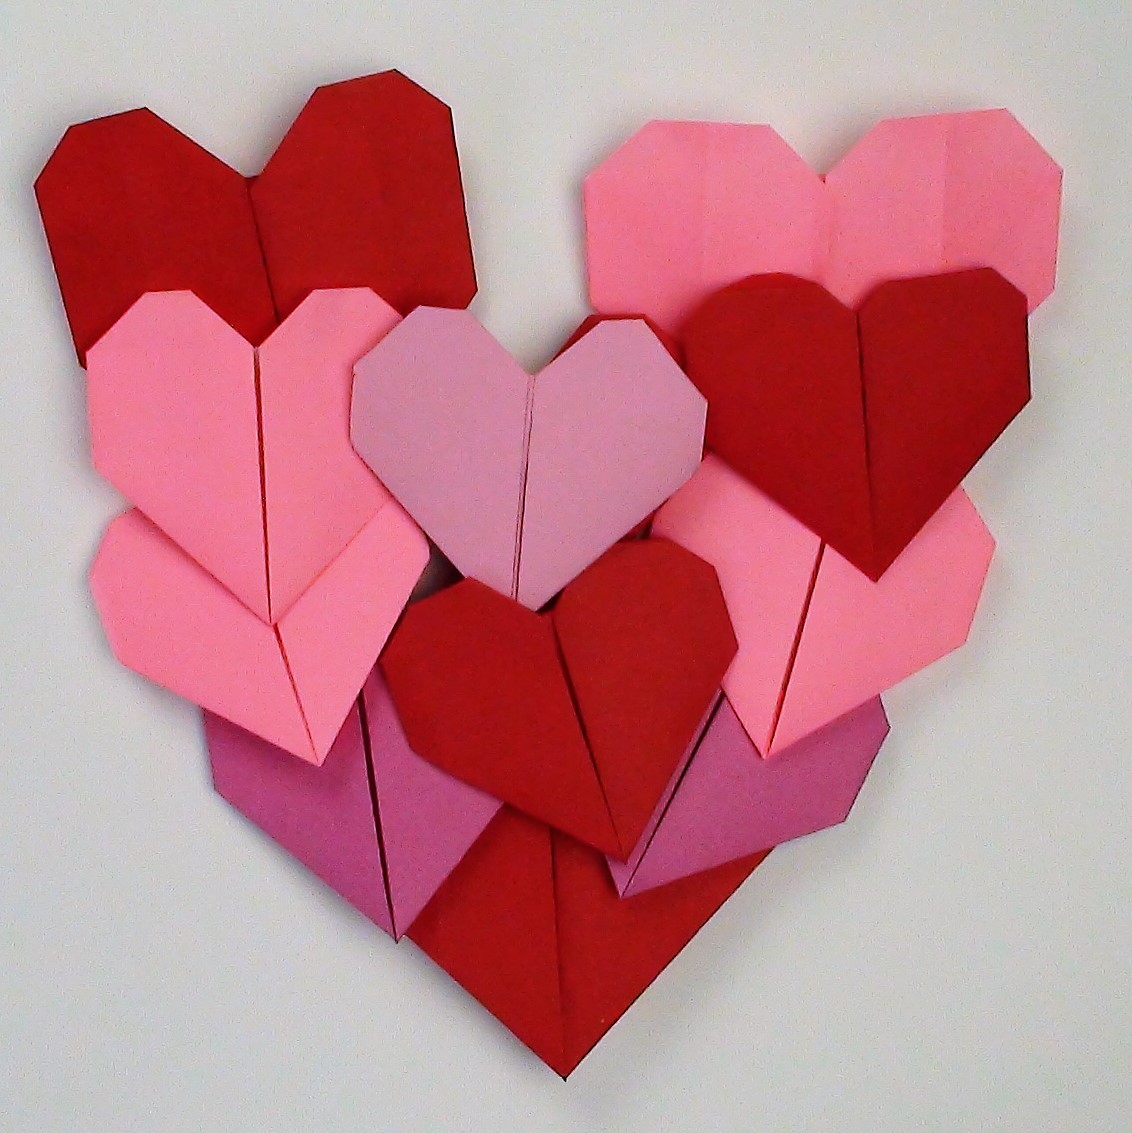 Origami Dollar Heart & Star Tutorial - How to make a Dollar heart with star  - YouTube | 1133x1132